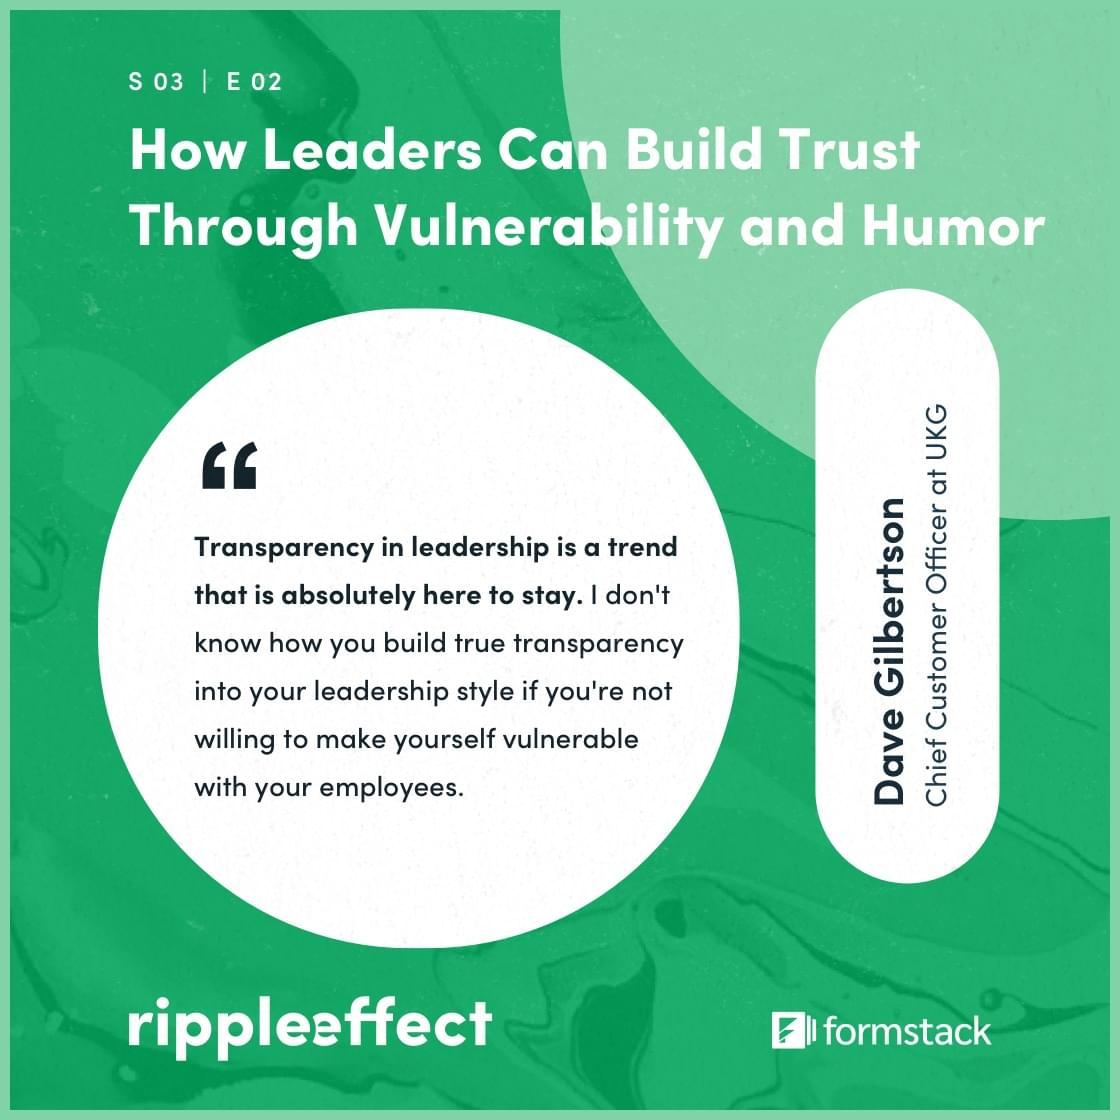 quote from the Ripple Effect podcast episode How leaders Can Build Trust Through Vulnerability and Humor